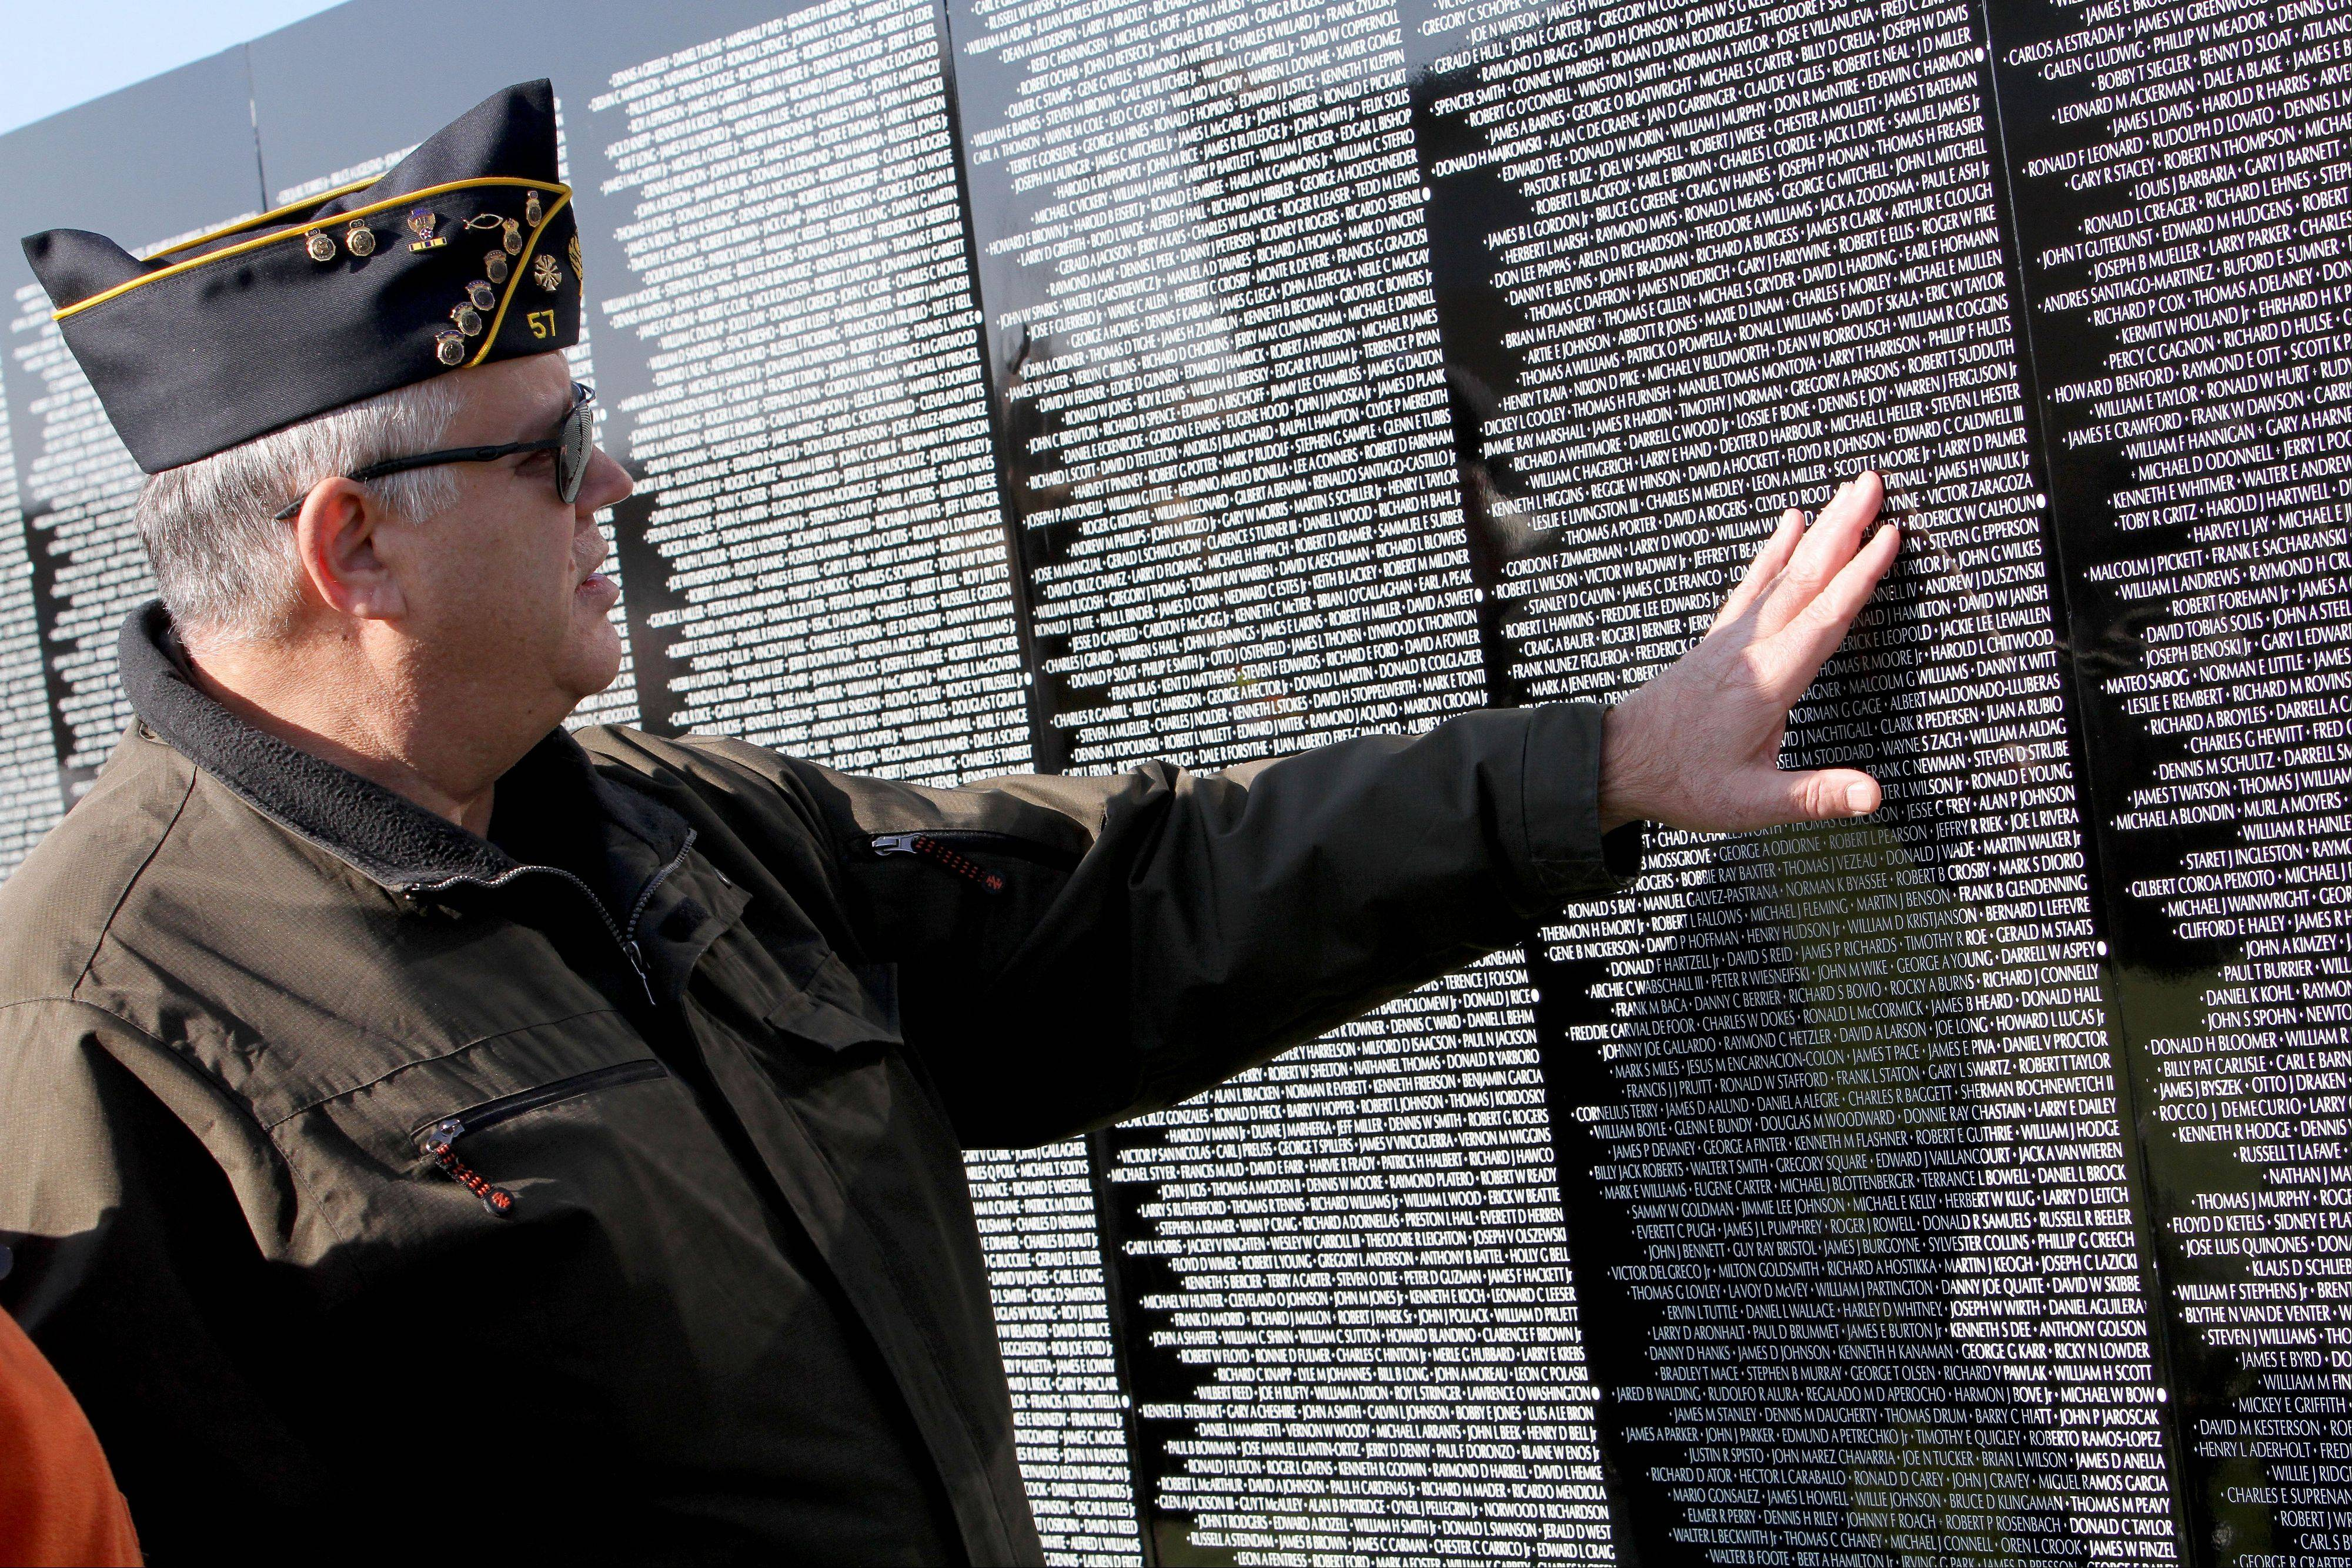 Ronald J. Juvingo, a Vietnam veteran, who served from 1967 to 1971, visited The Moving Wall Friday morning.